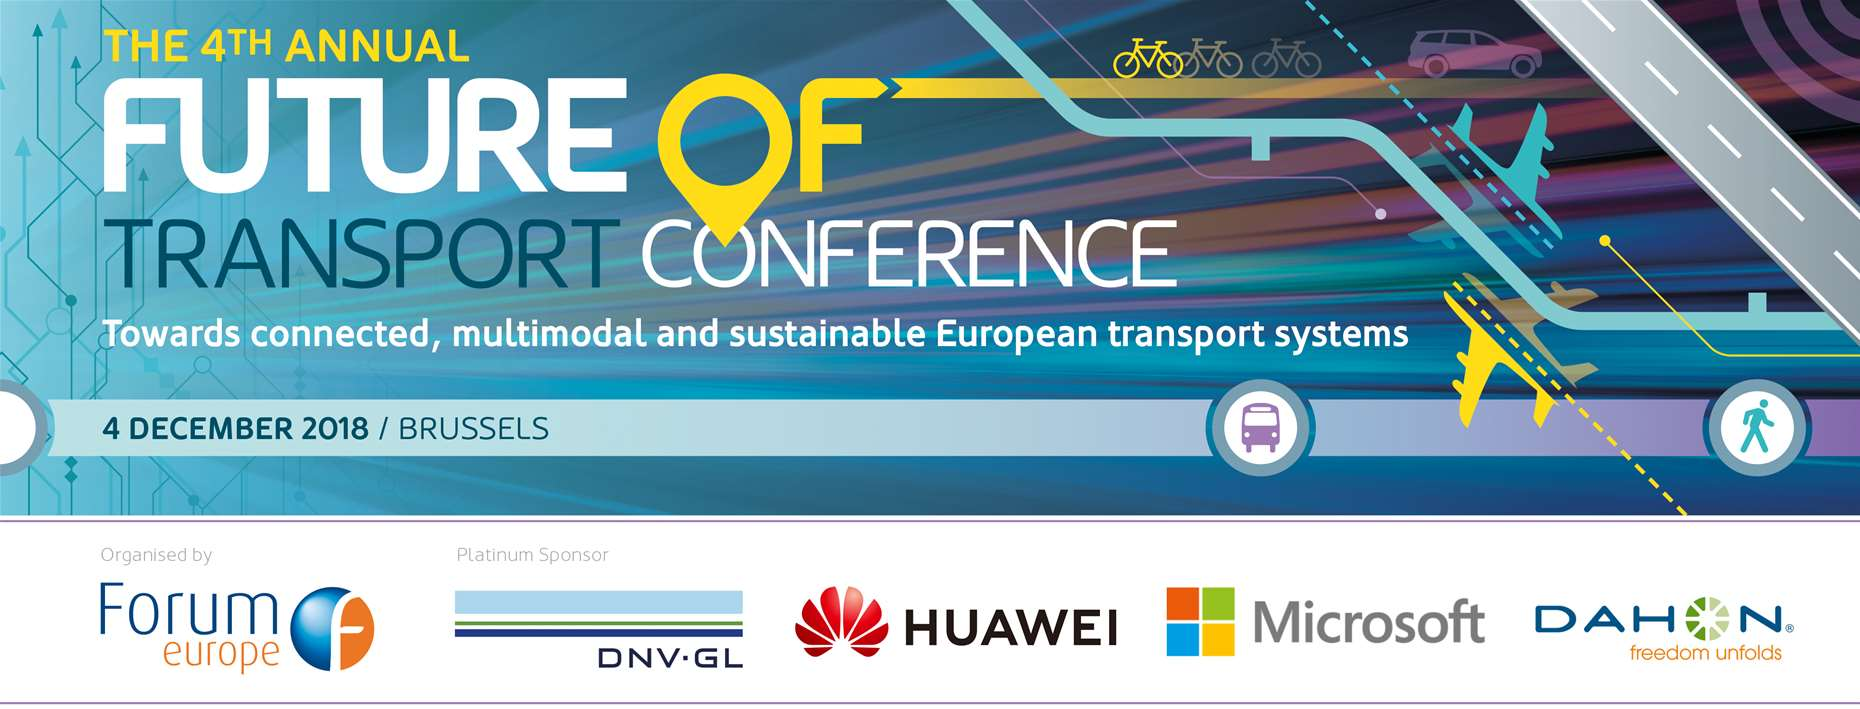 The 4th Annual Future of Transport Conference